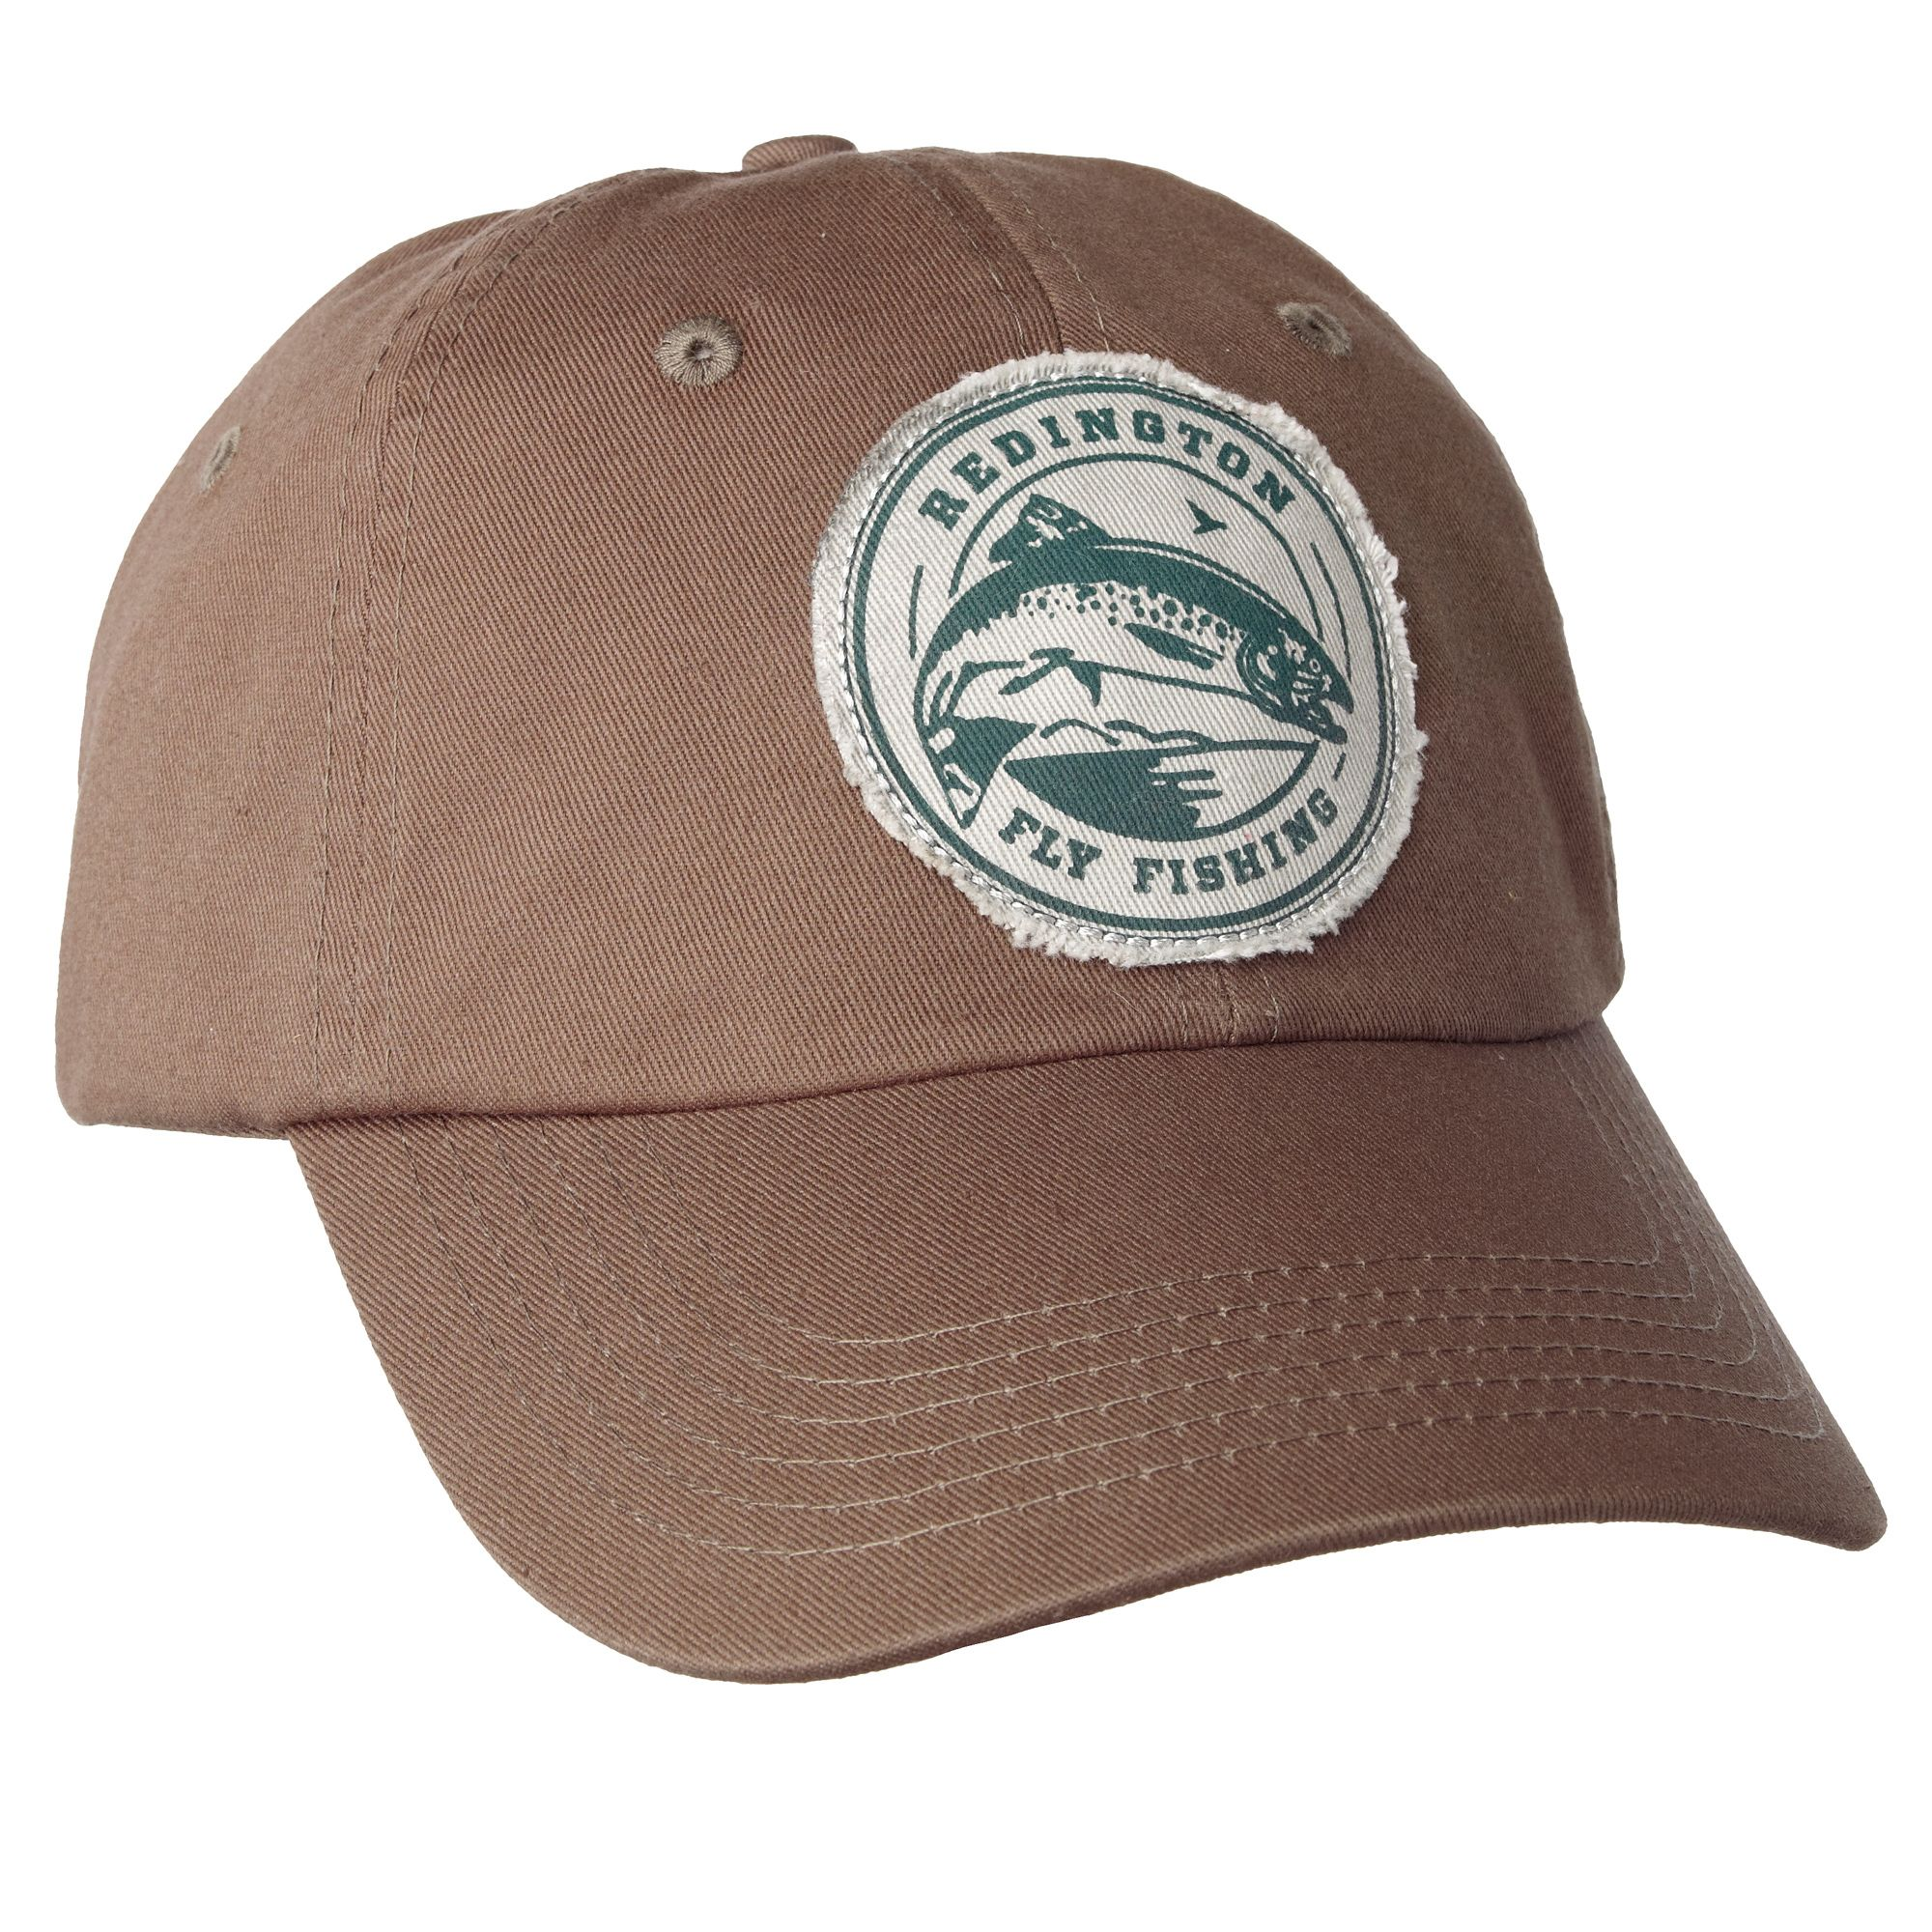 Redington beer coaster hat fishing gear pinterest for Long bill fishing hat